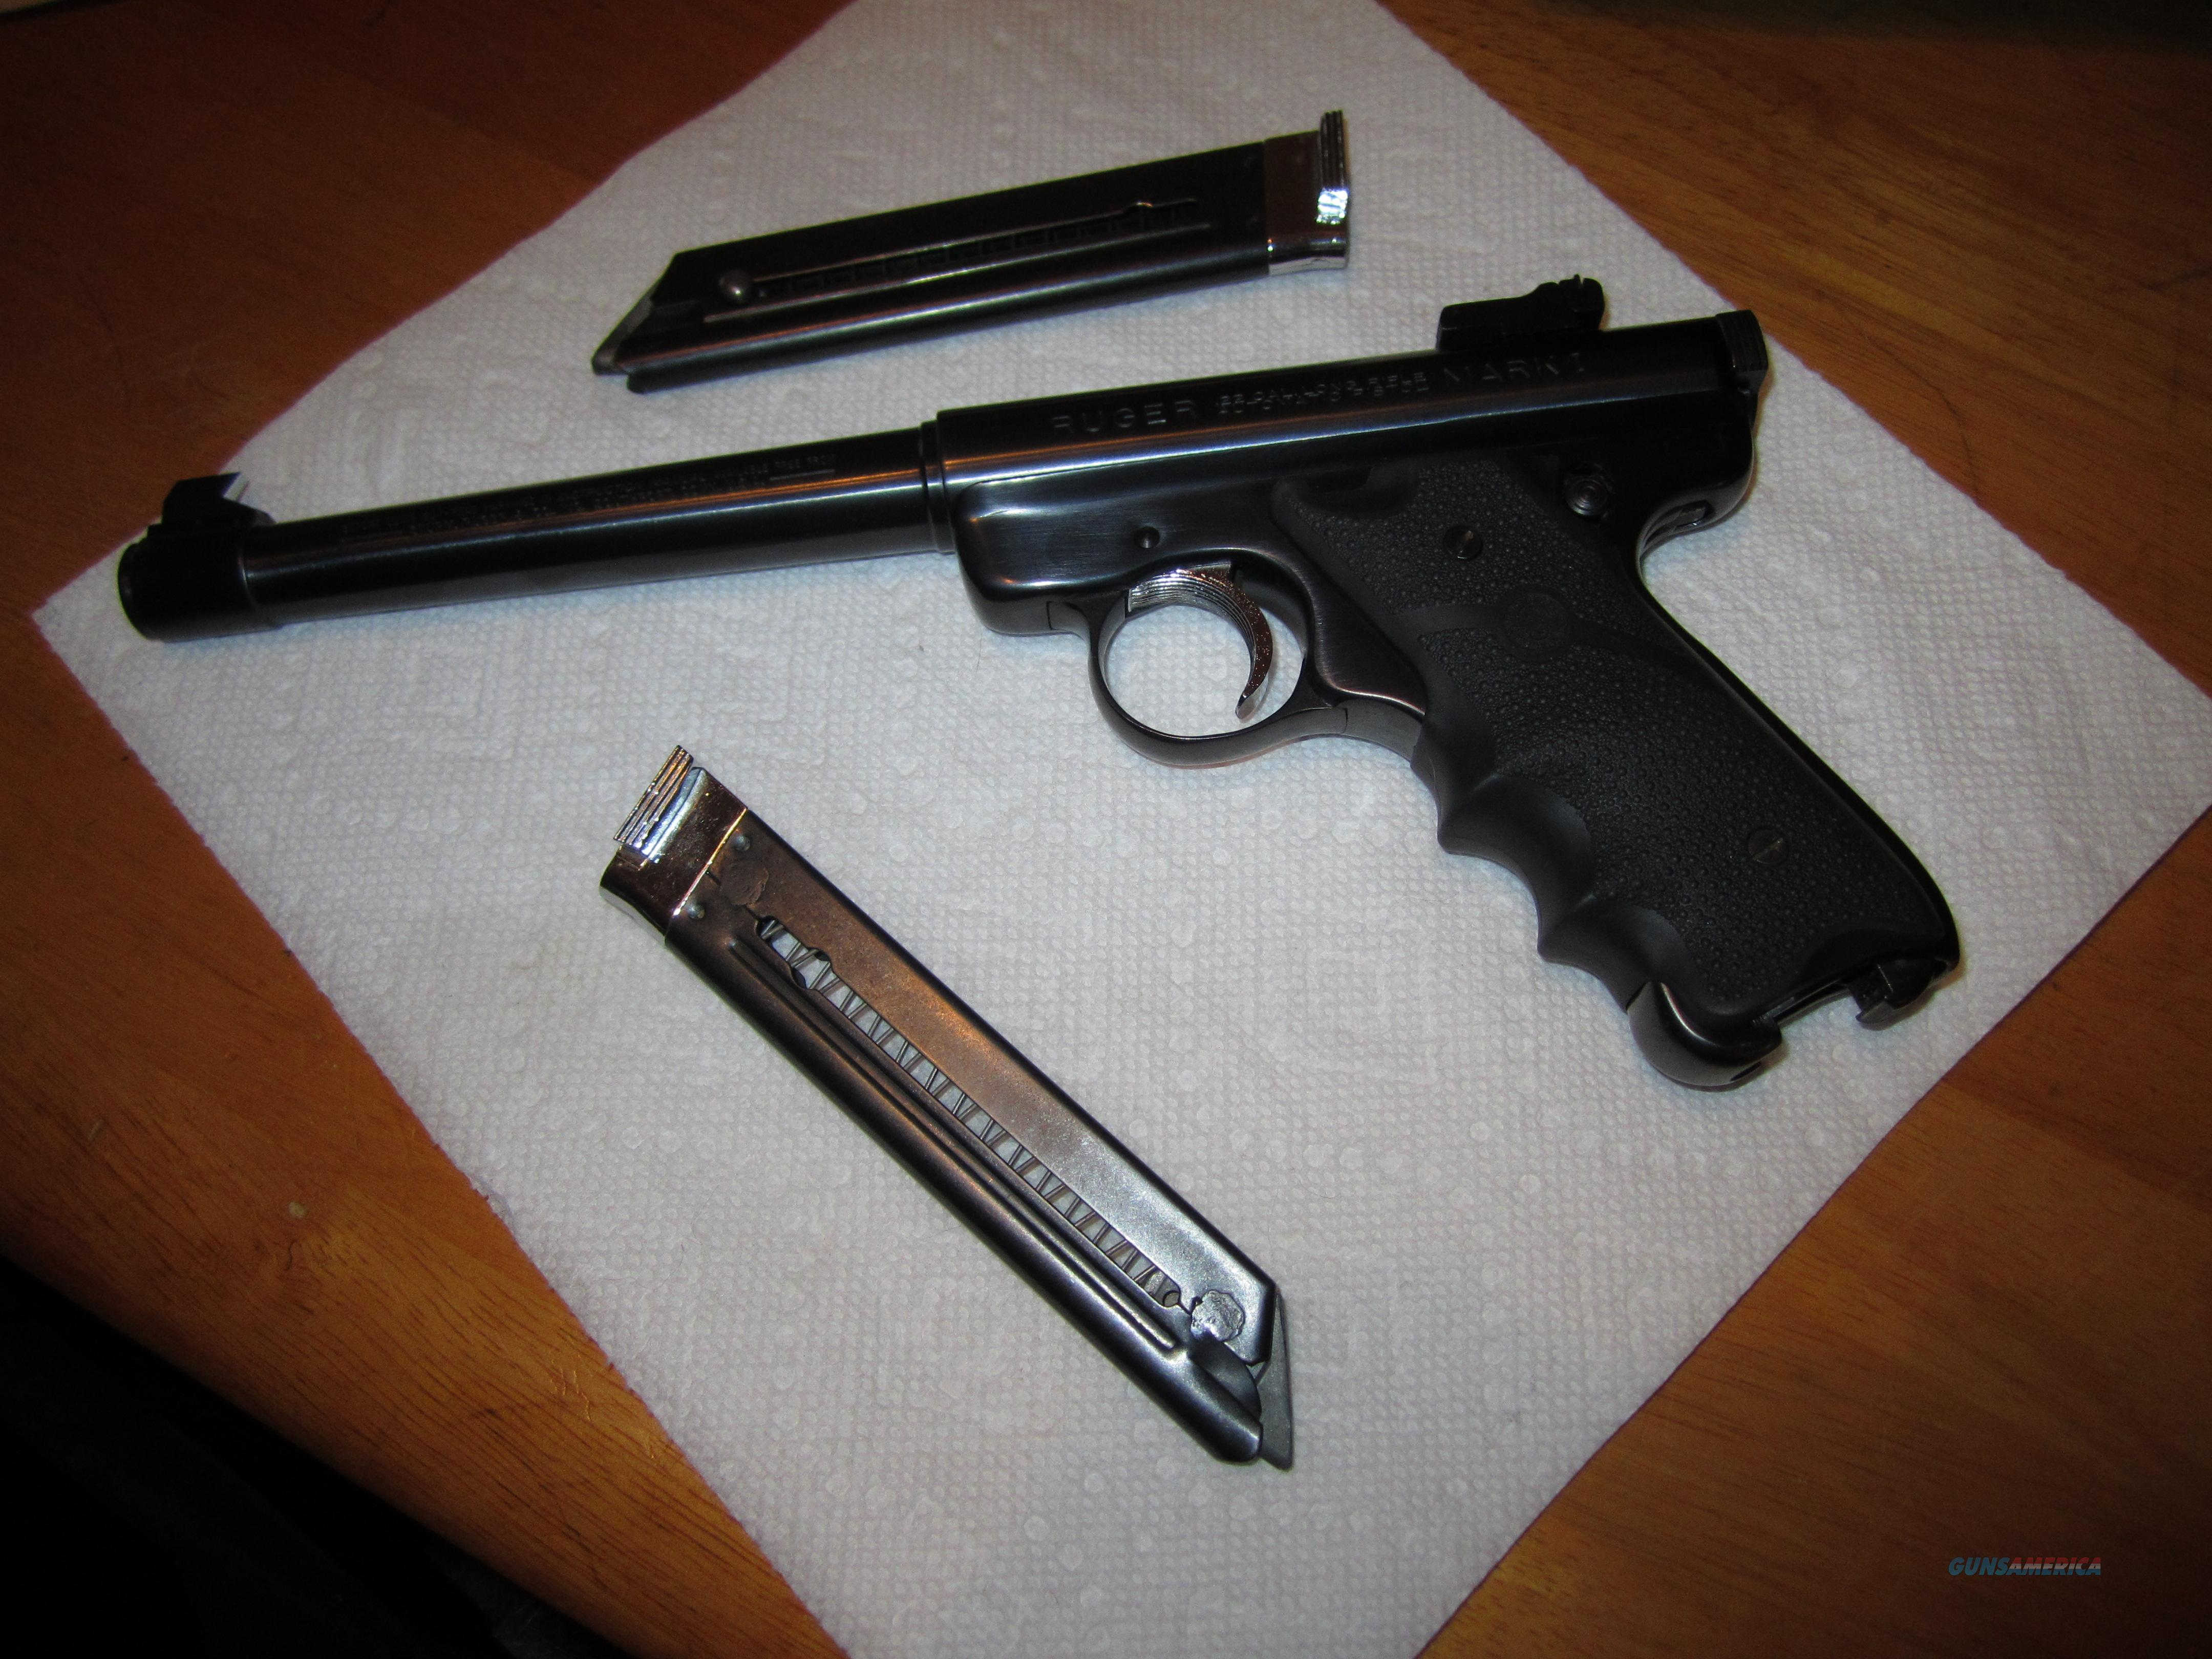 1978 Ruger Mark 1 Tapered 6 7/8 Target Bull Barrel 2 Mags 2 Grips  Guns > Pistols > Ruger Semi-Auto Pistols > Mark I & II Family